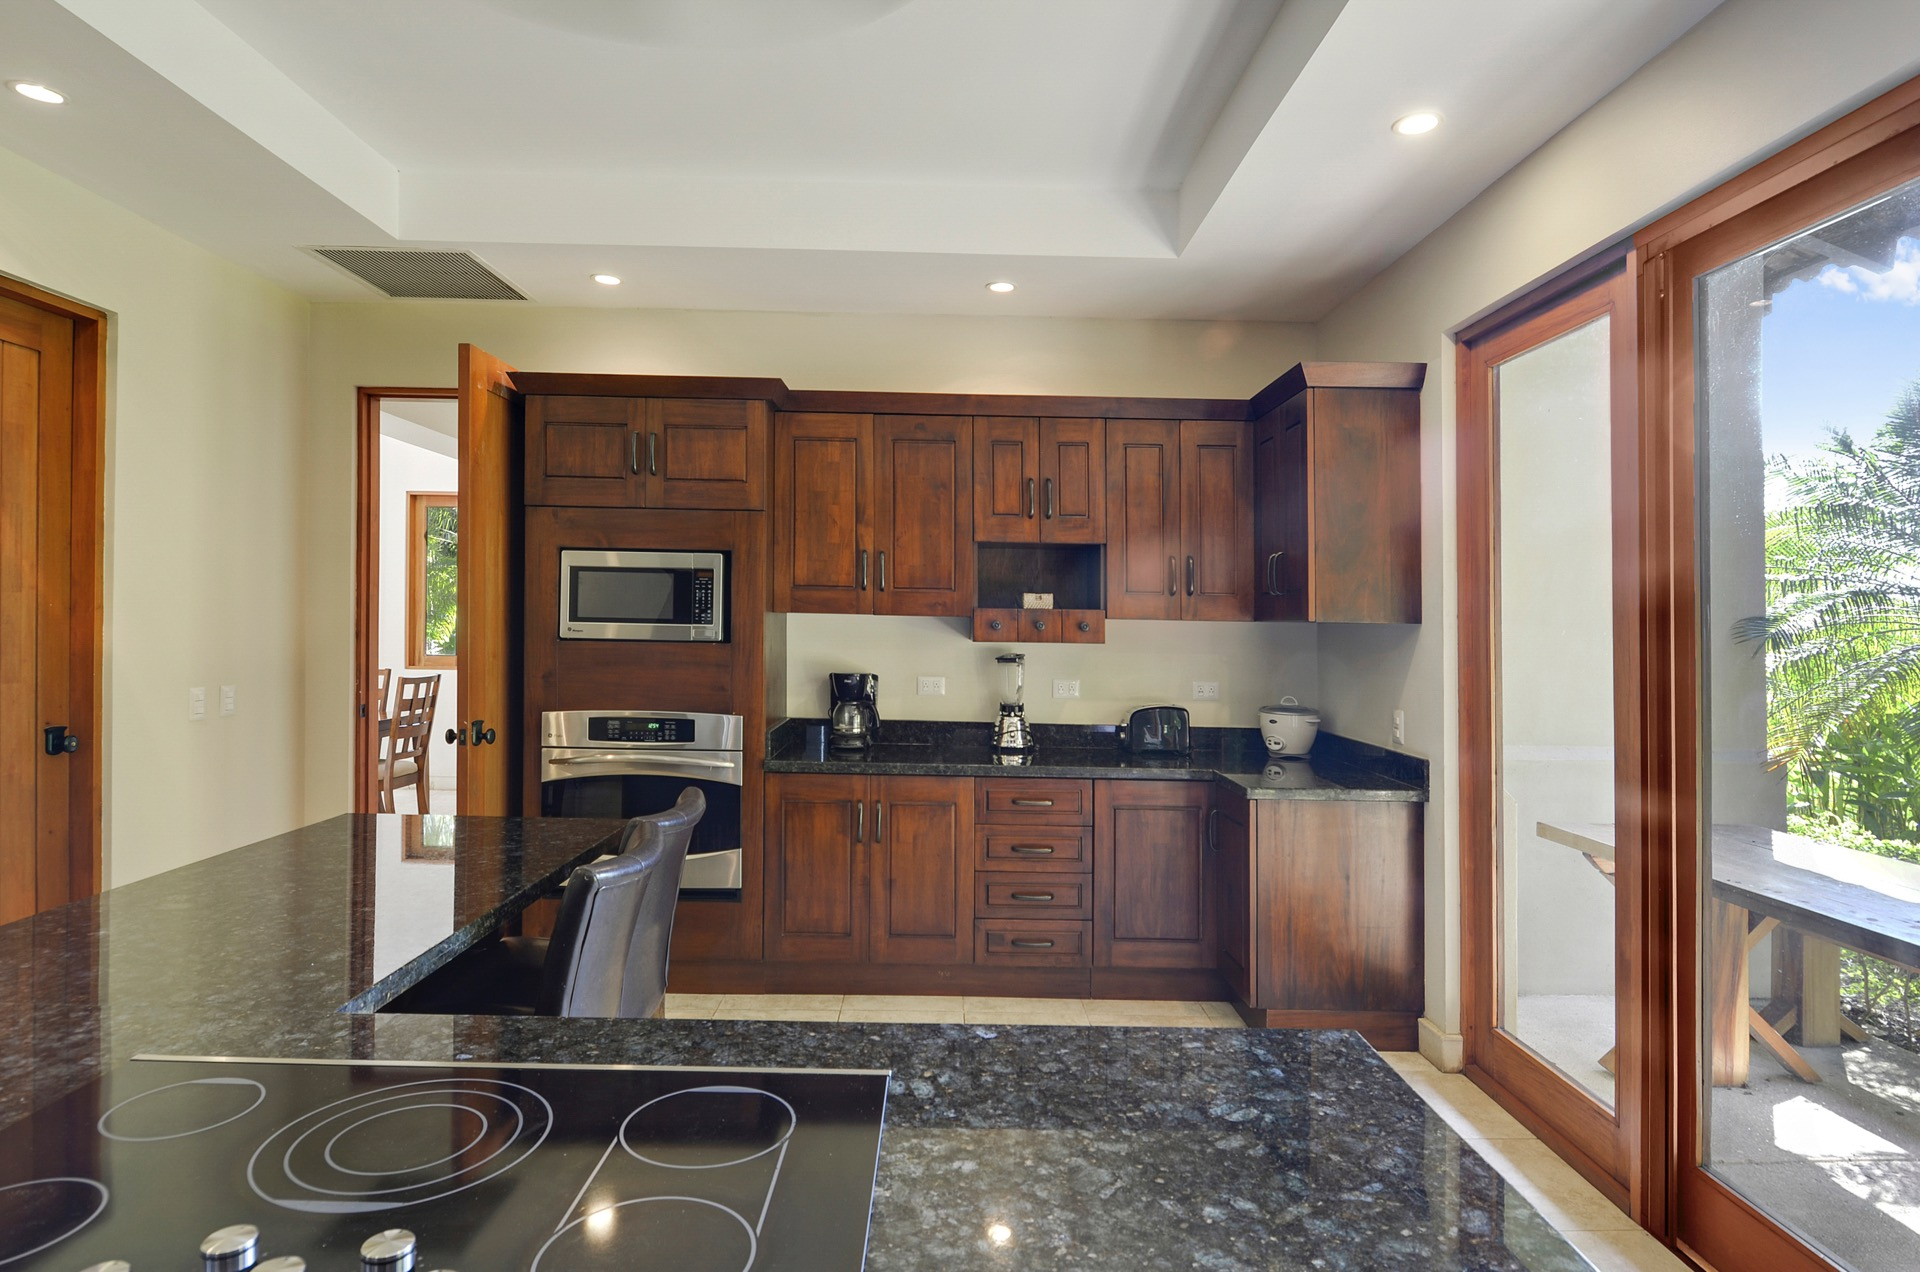 Kitchen with granite counter-tops and steel appliances